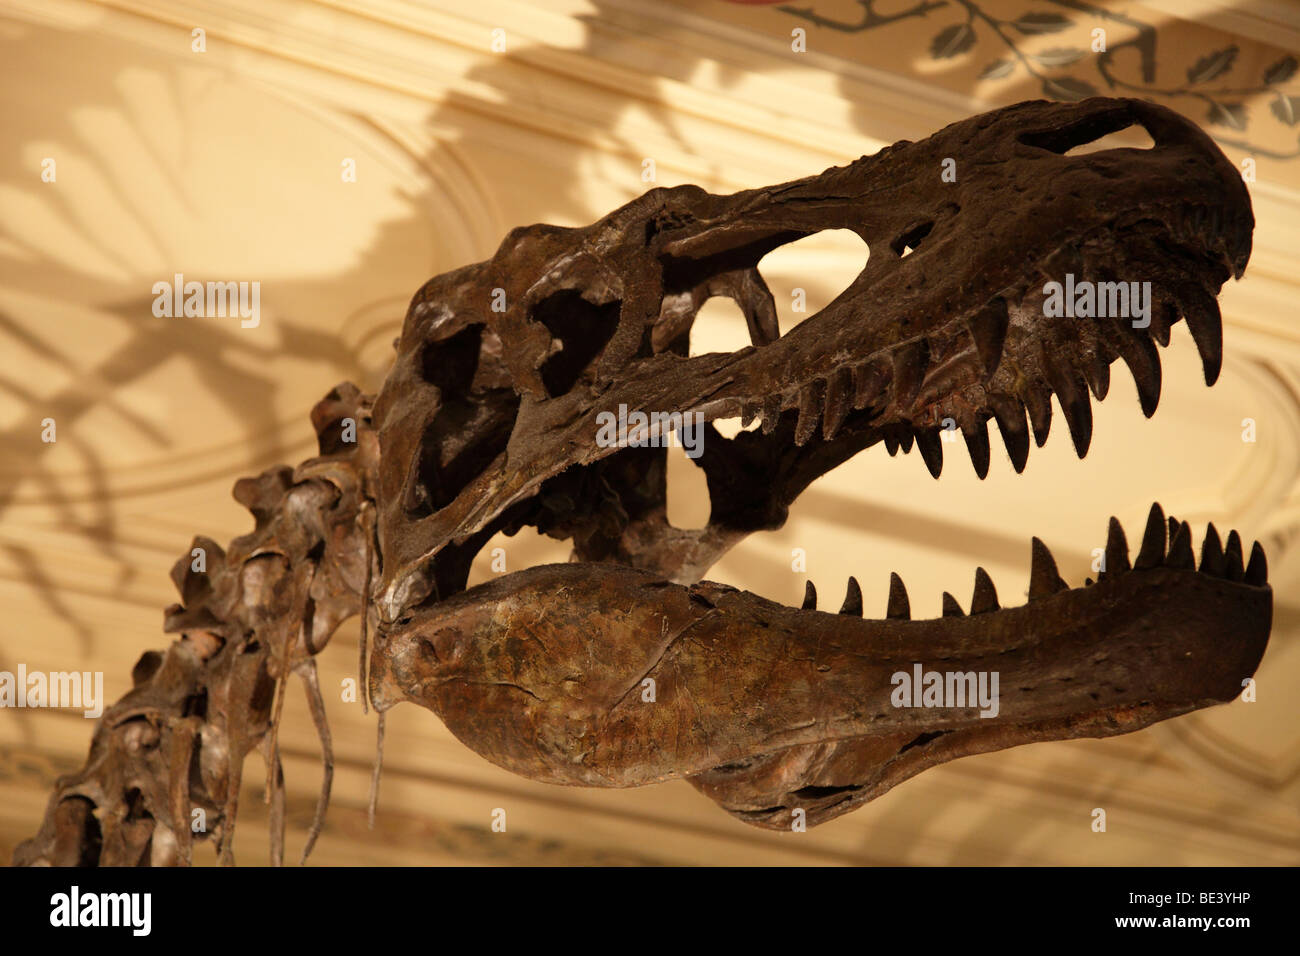 Albertosaurus skull at the Natural History Museum, London - Stock Image